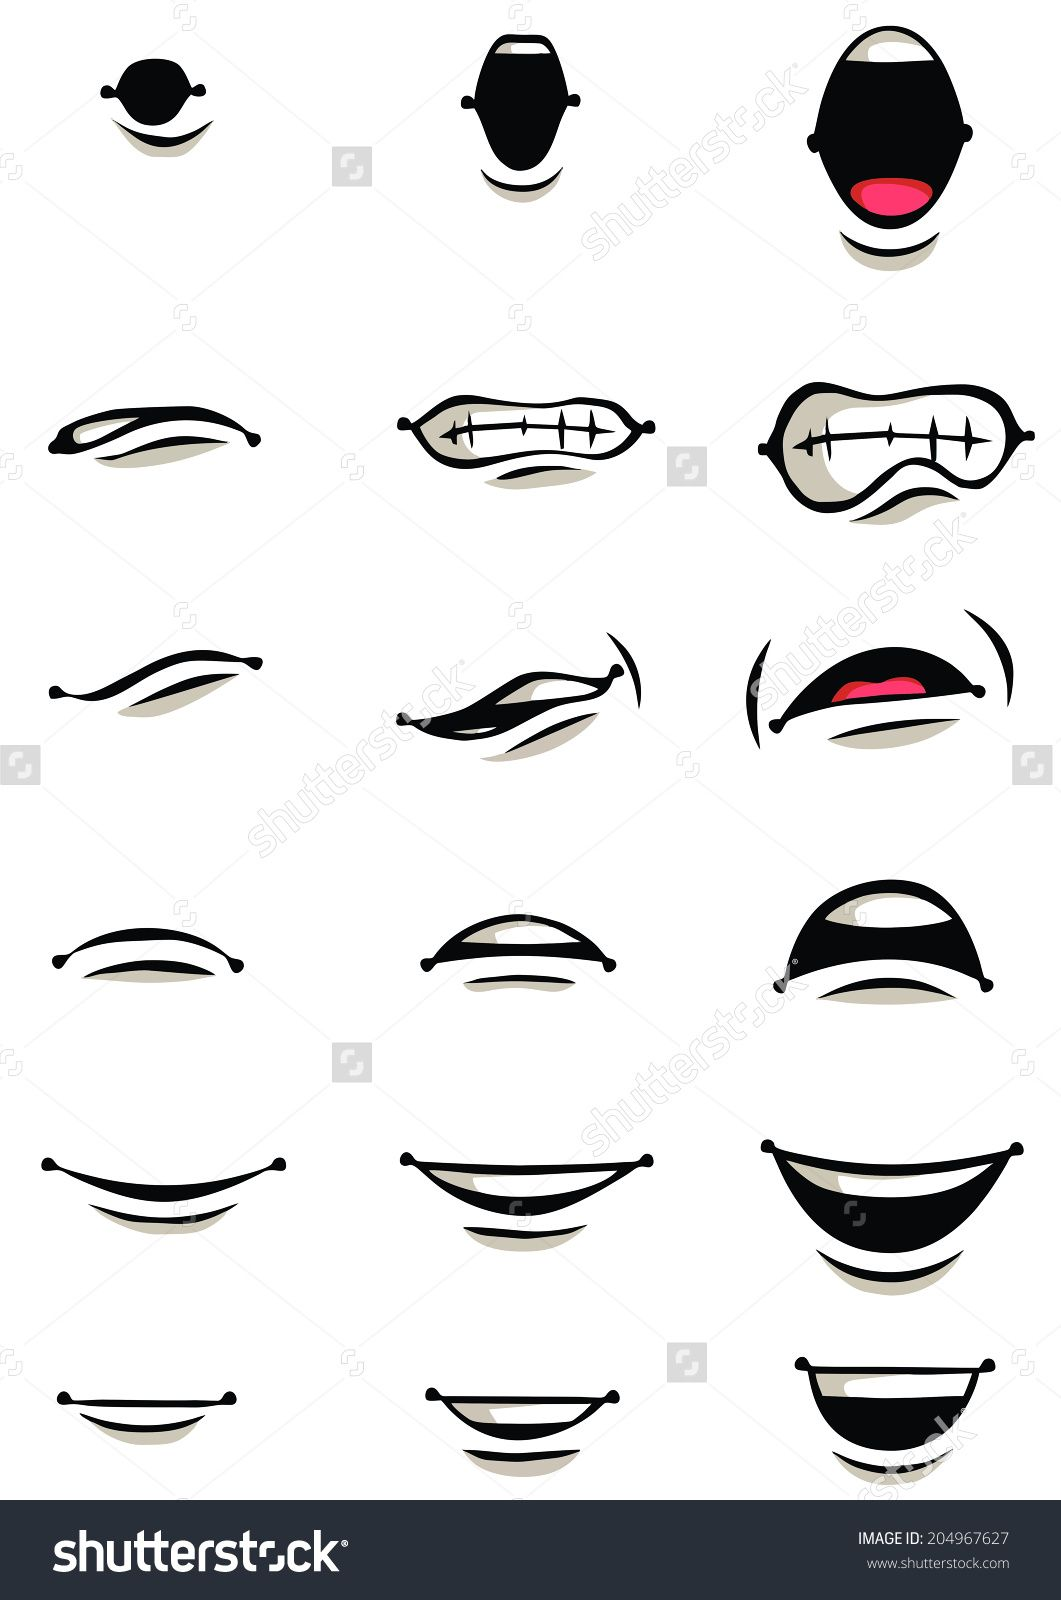 Cartoon Mouth Collection In